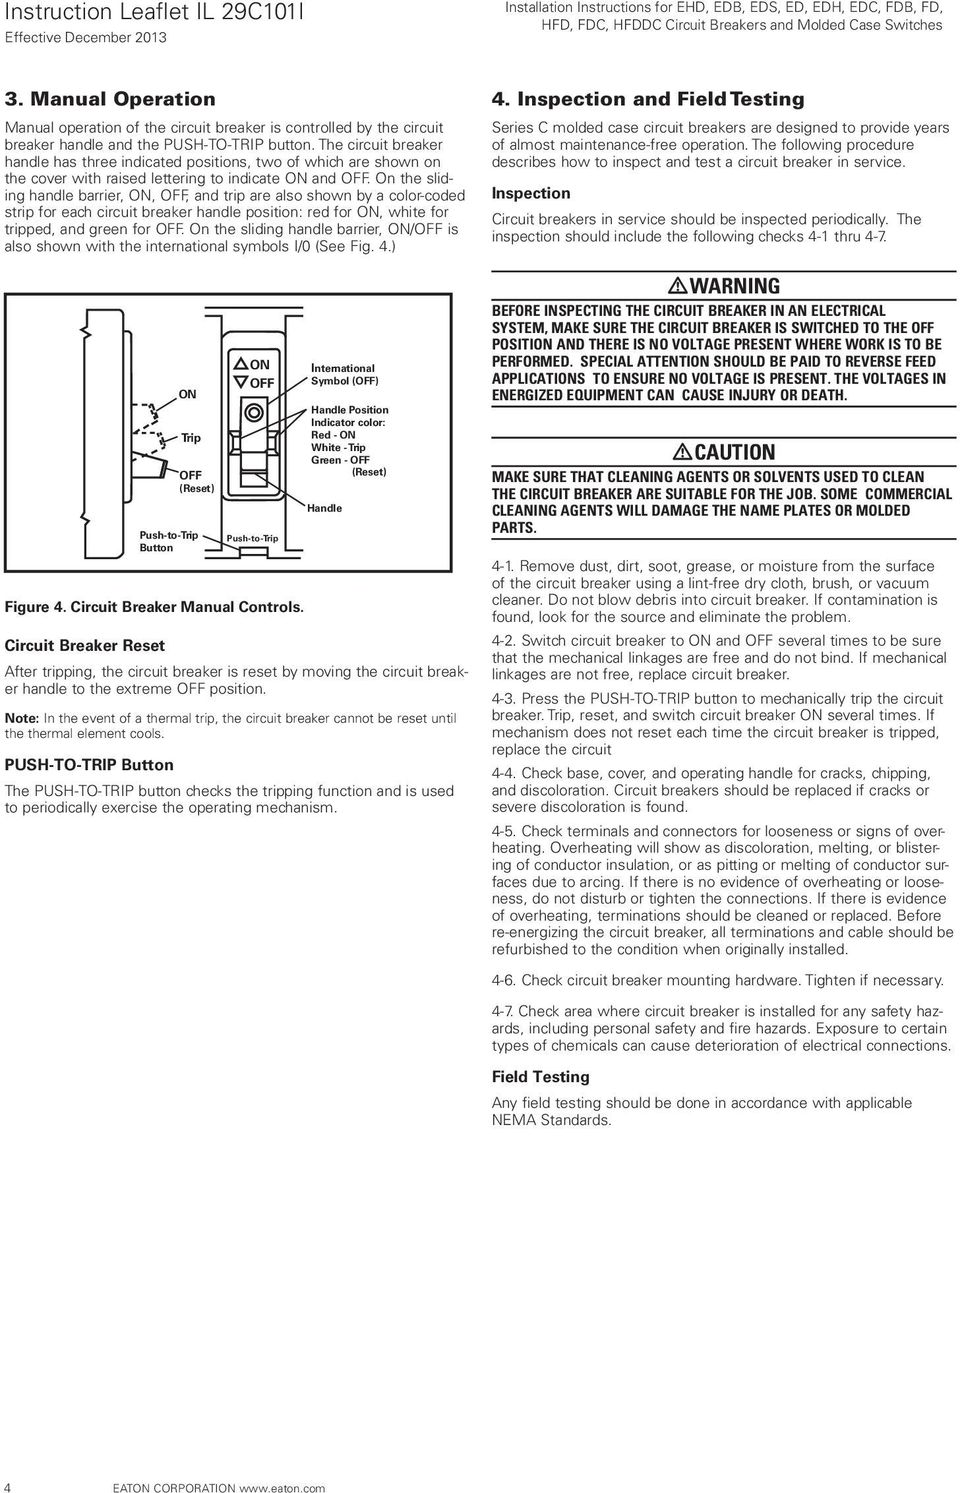 Installation Instructions For Ehd Edb Eds Ed Edh Edc Fdb Fd High Voltage Vacuum Circuit Breaker With Lateral Operating Mechanism4 On The Sliding Handle Barrier Off And Trip Are Also Shown By